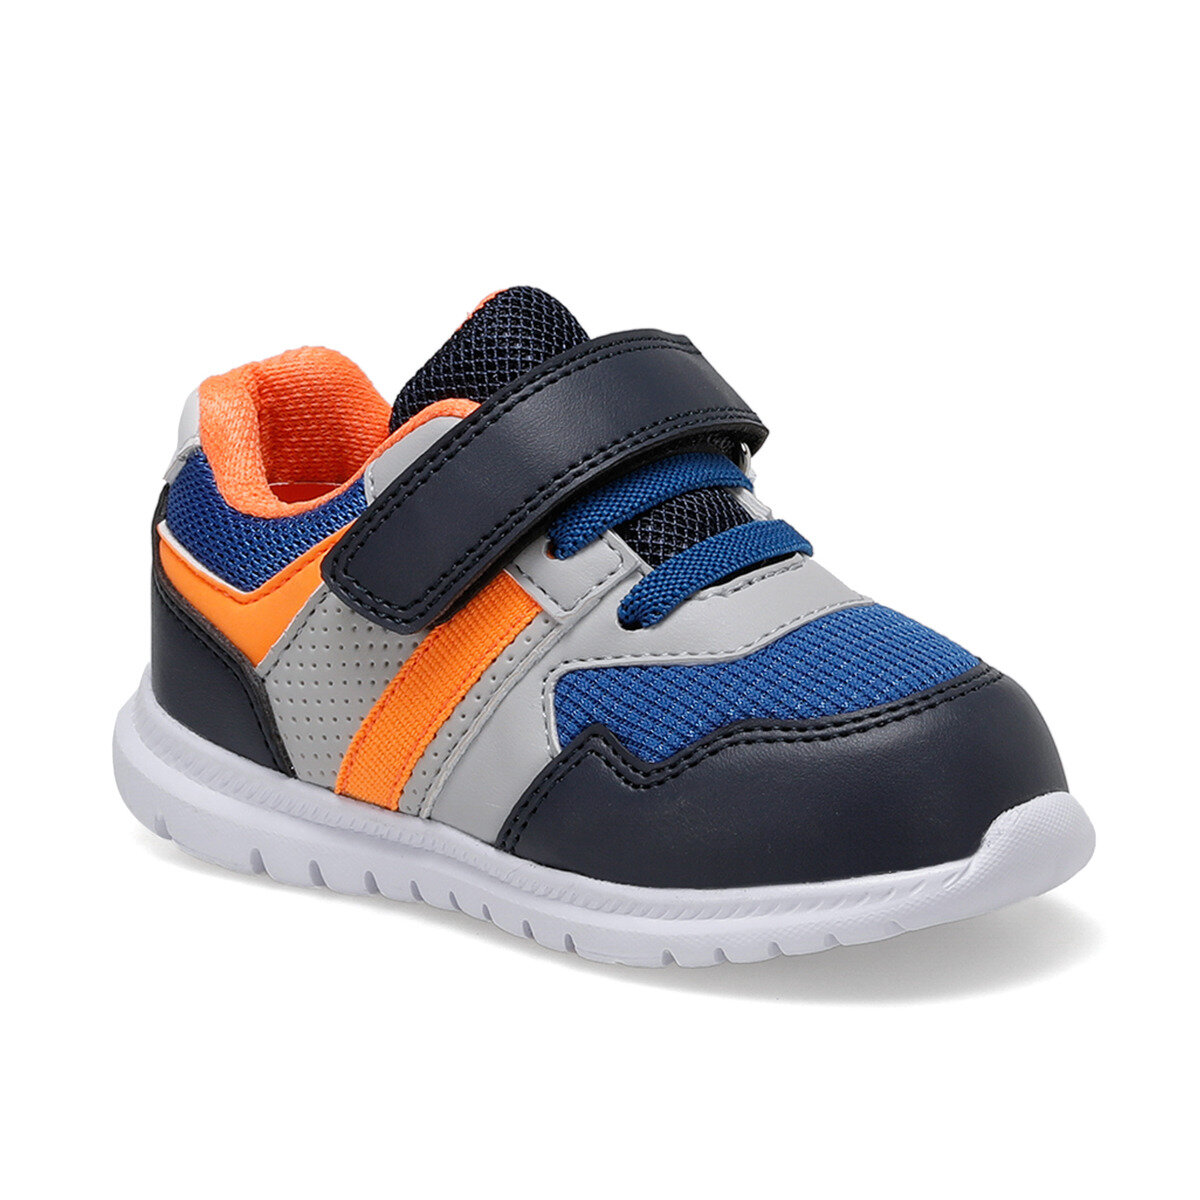 FLO LINES Navy Blue Male Child Hiking Shoe I-Cool